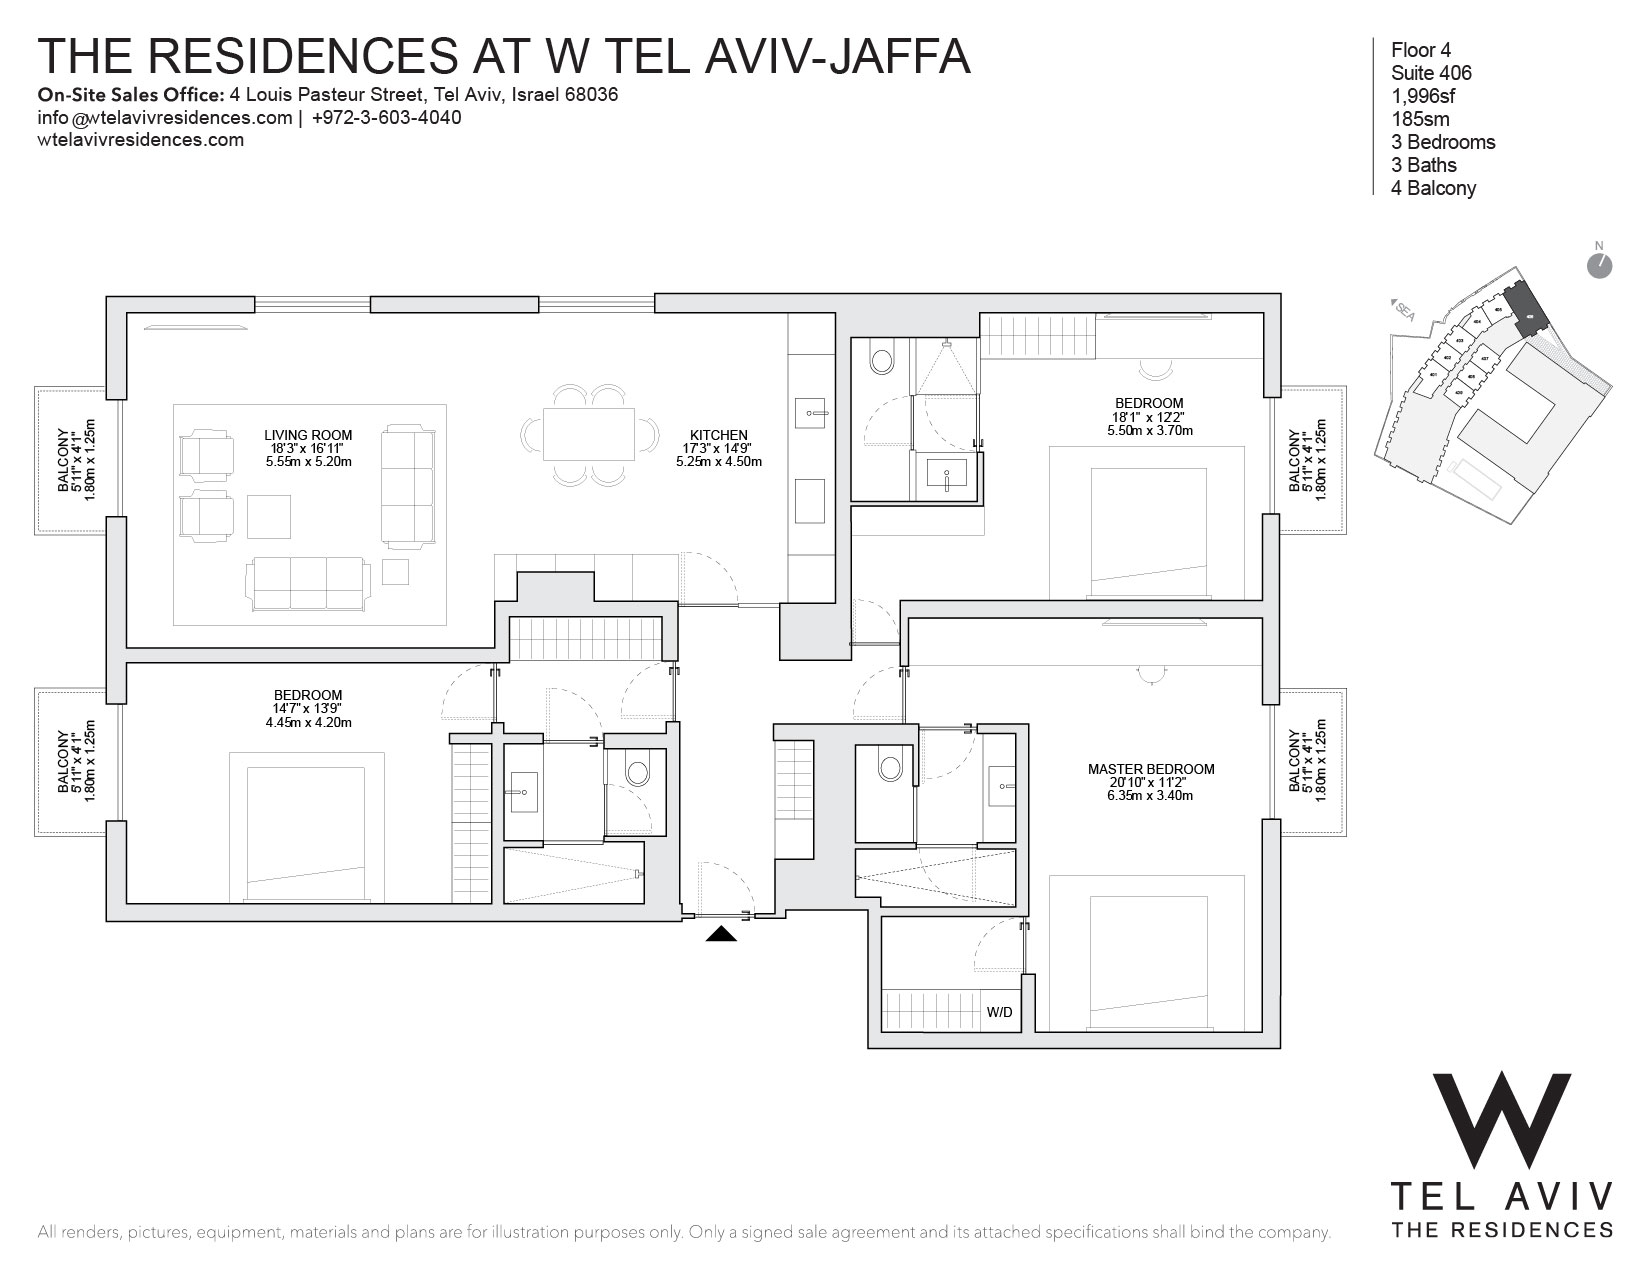 Apartment for Sale at W Tel Aviv Residences, 406 Luxury Apartment Tel Aviv, Israel Israel